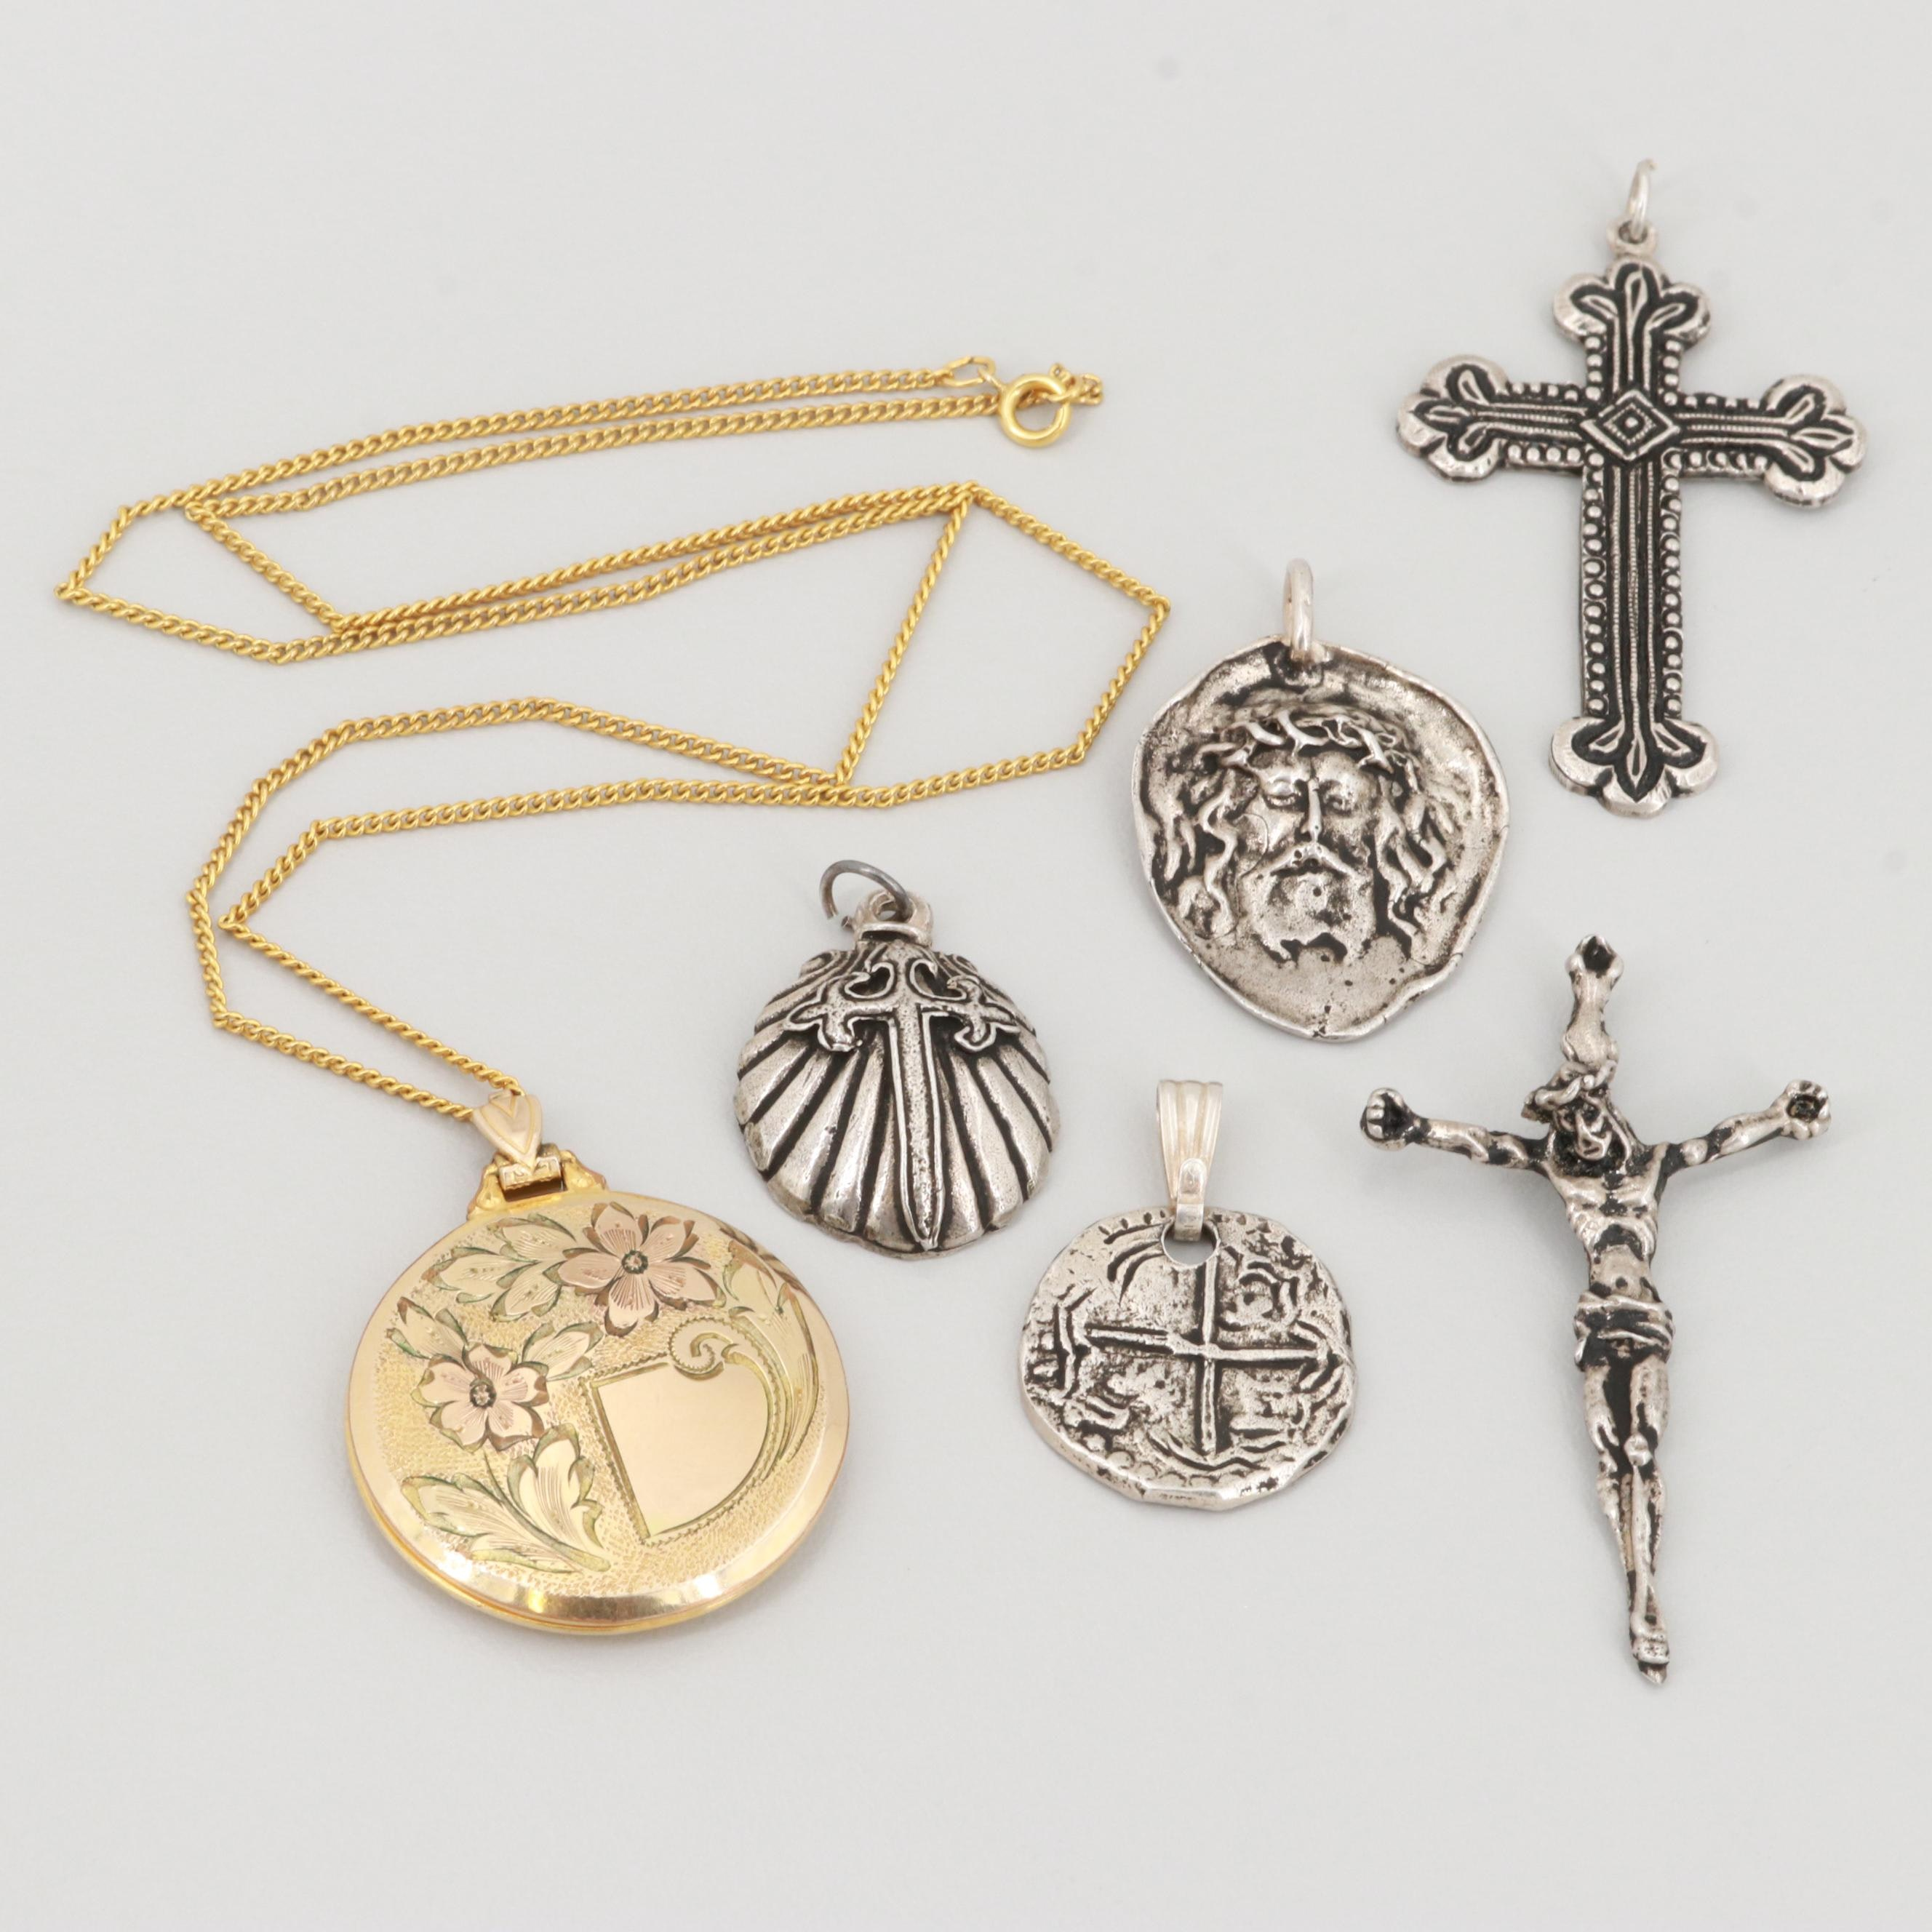 Sterling Silver Crucifix, Cross Pendant Assortment and Gold Tone Locket Necklace